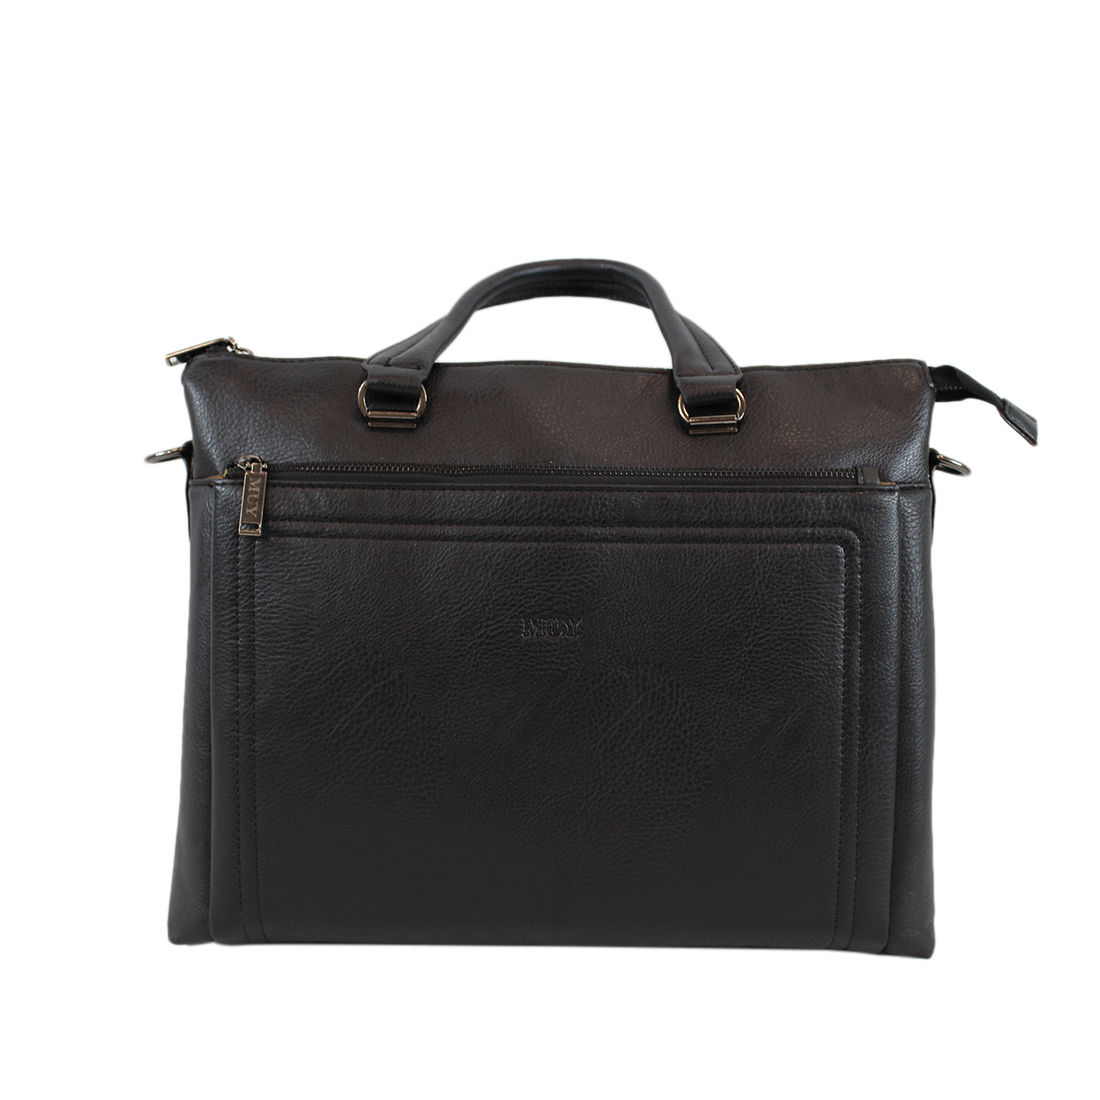 Real Leather- Plain with pocket infront